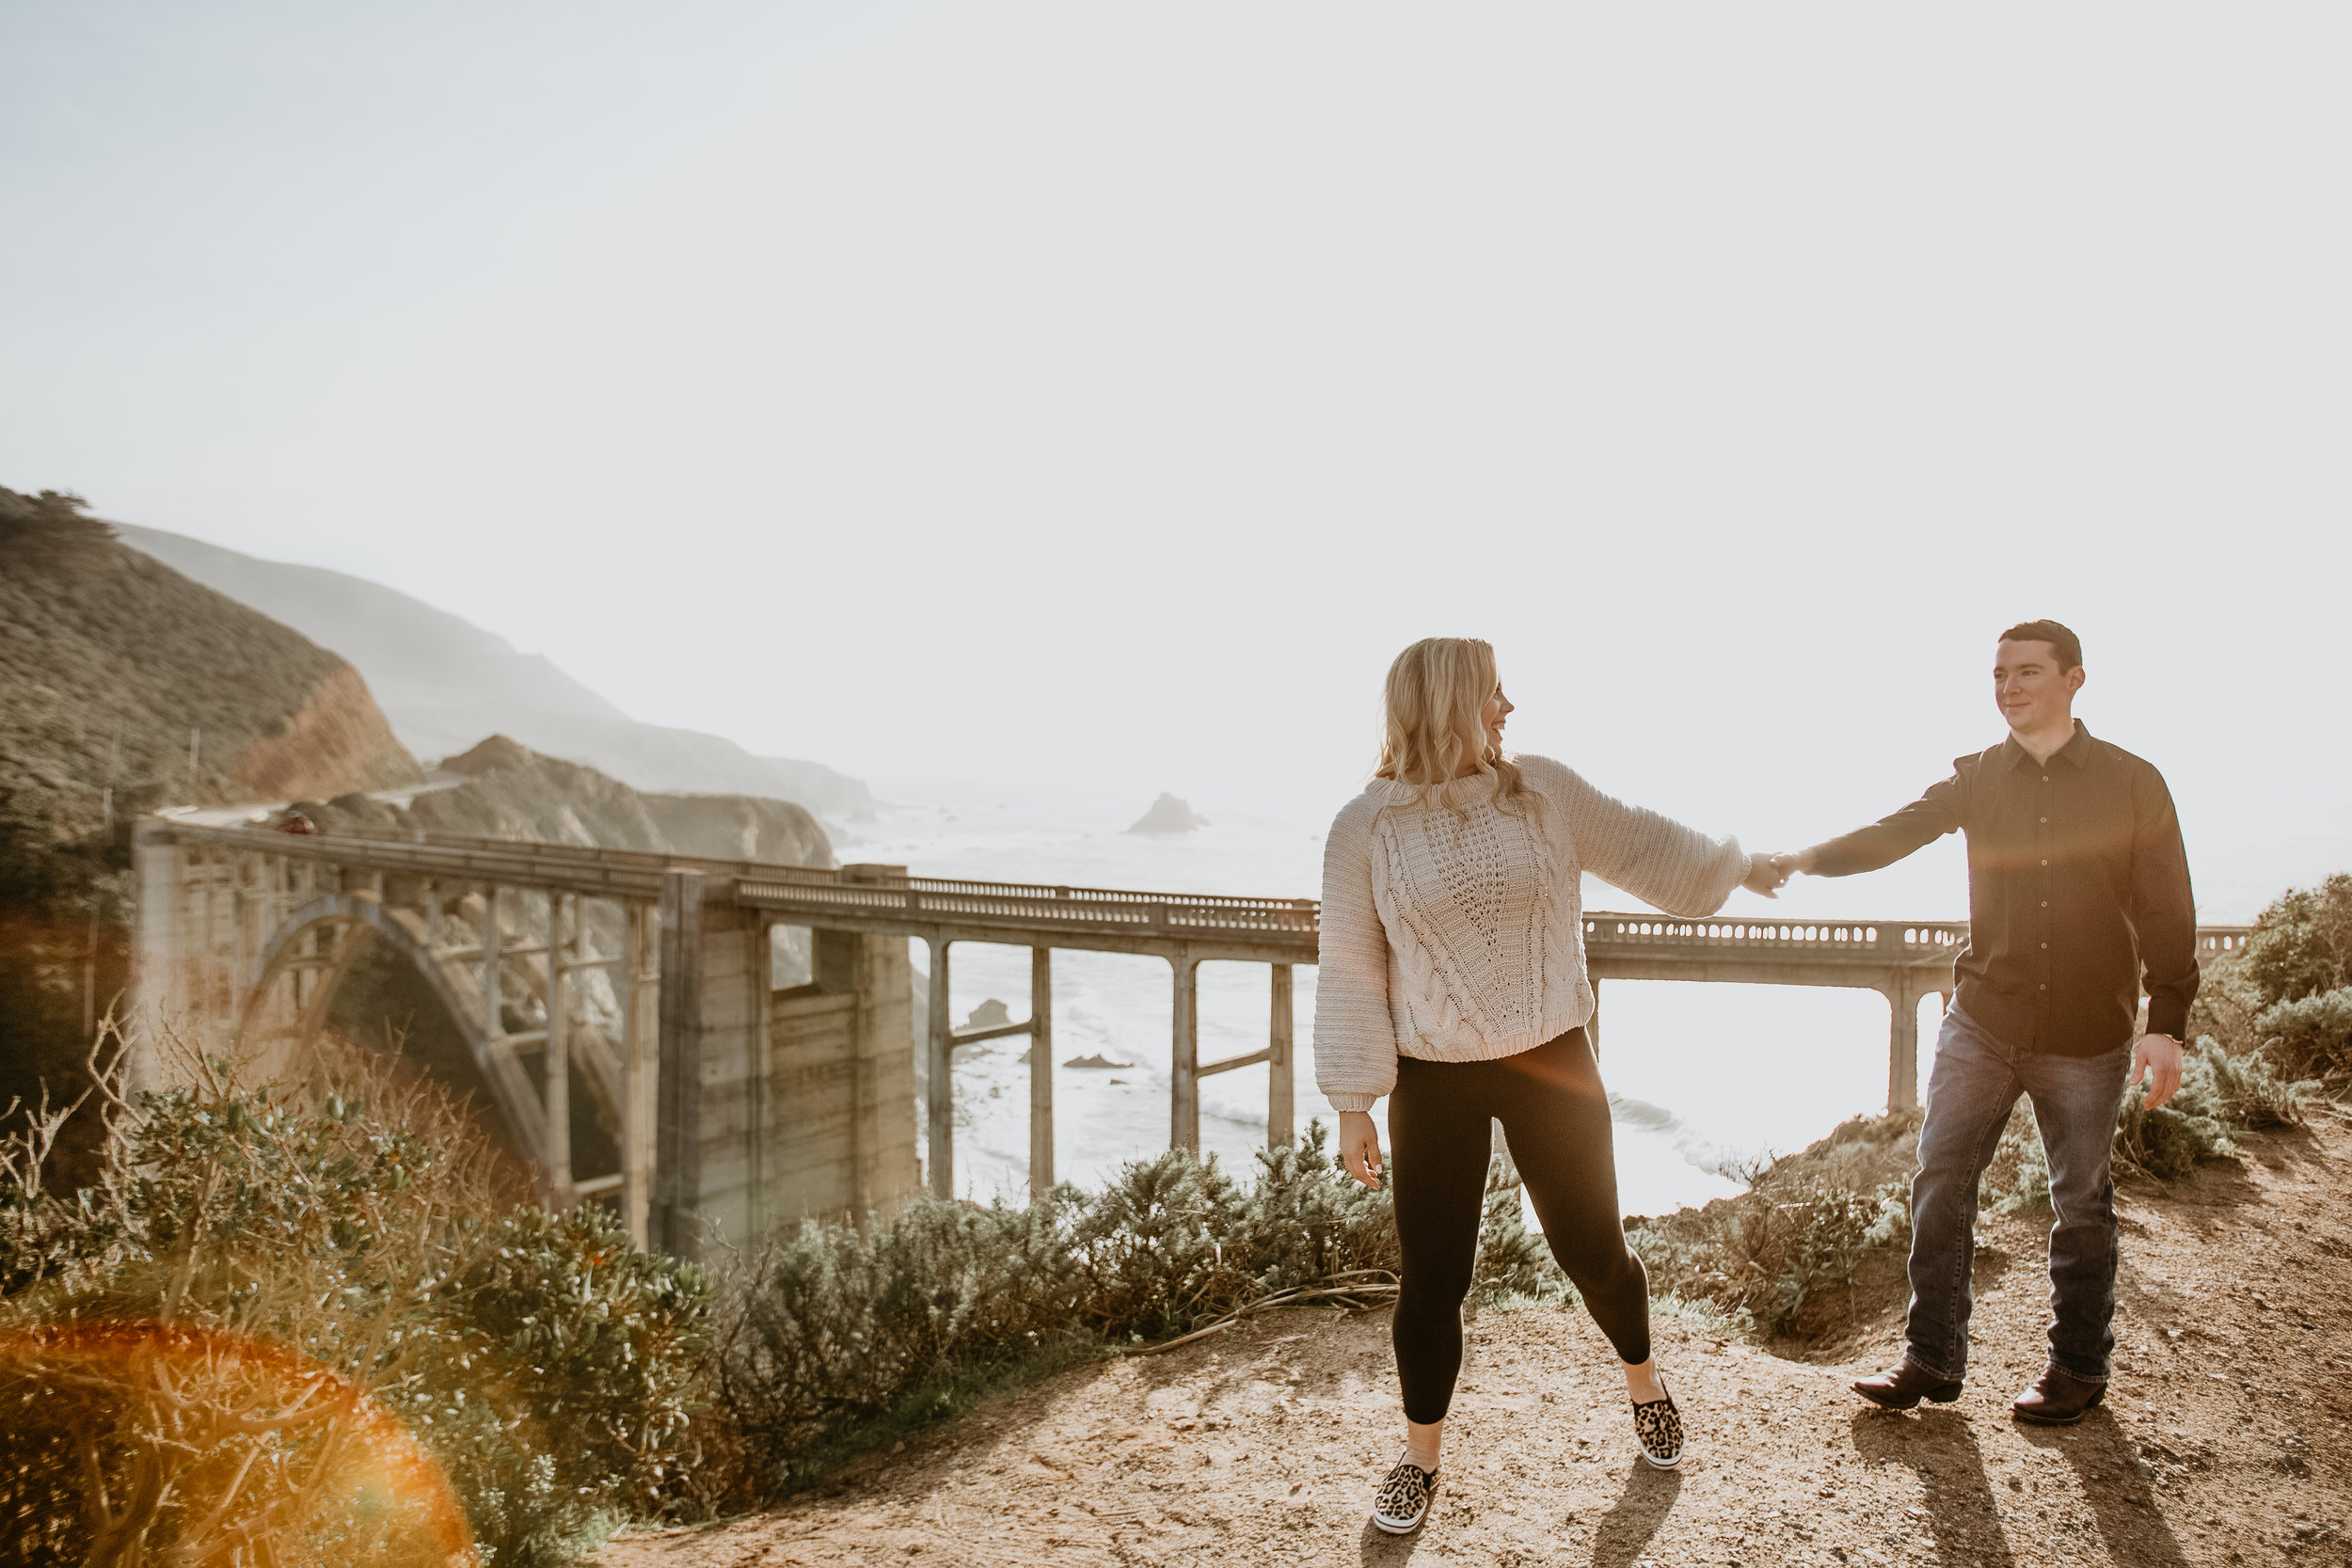 Nicole-Daacke-Photography-big-sur-garrapatta-state-park-adventurous-engagement-session-bixy-bridge-elopement-big-sur-wedding-photographer-monterey-elopement-photographer-california-golden-sunset-coast-photos-1.jpg